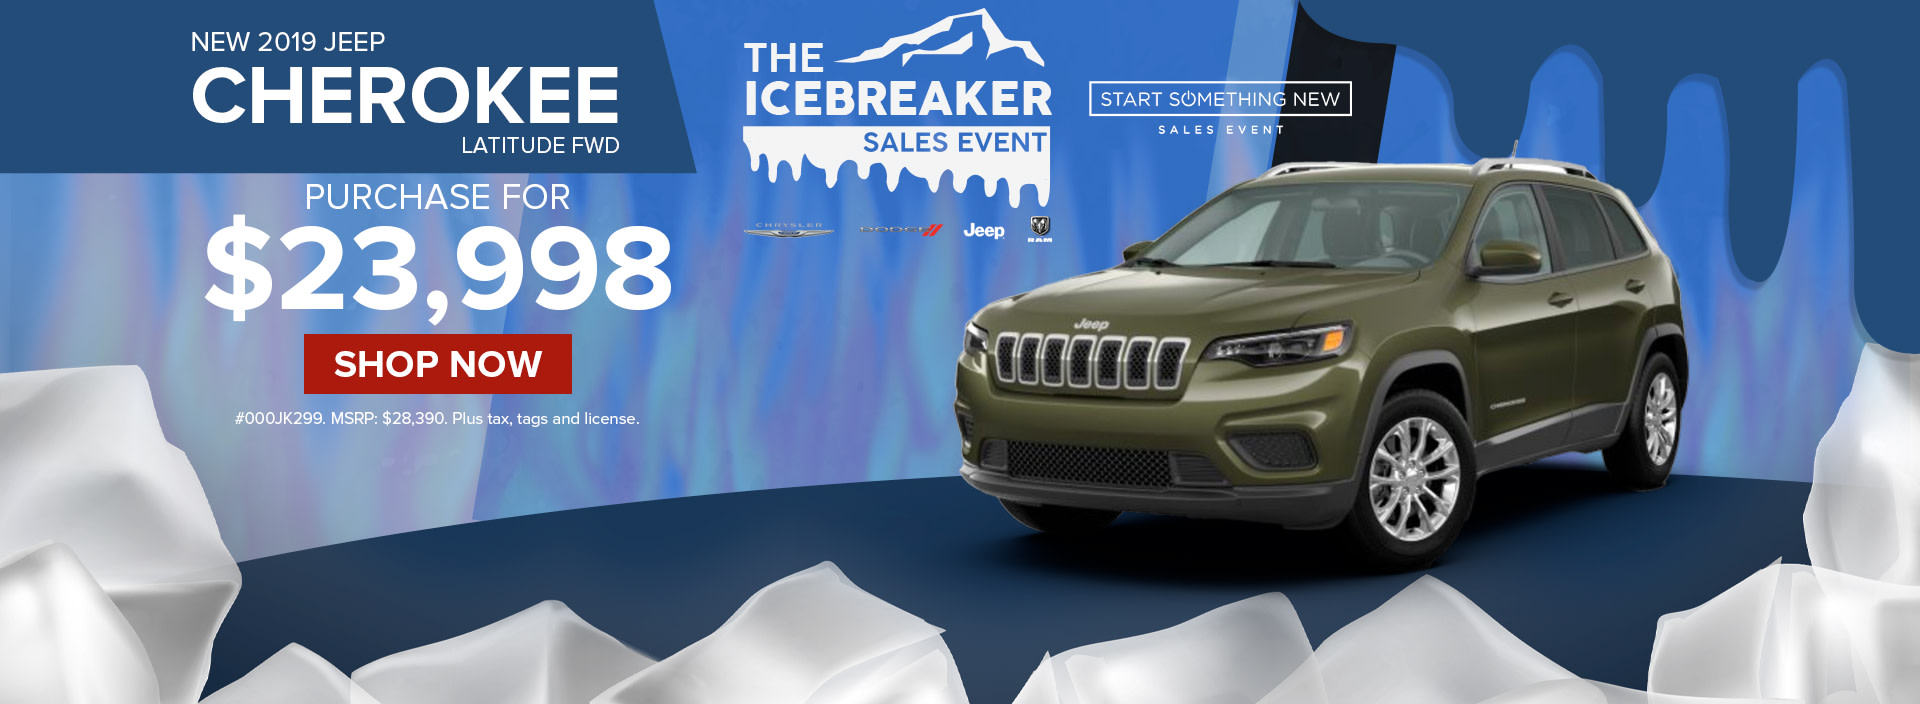 Best deal on a 2019 Jeep Cherokee at Norristown Jeep